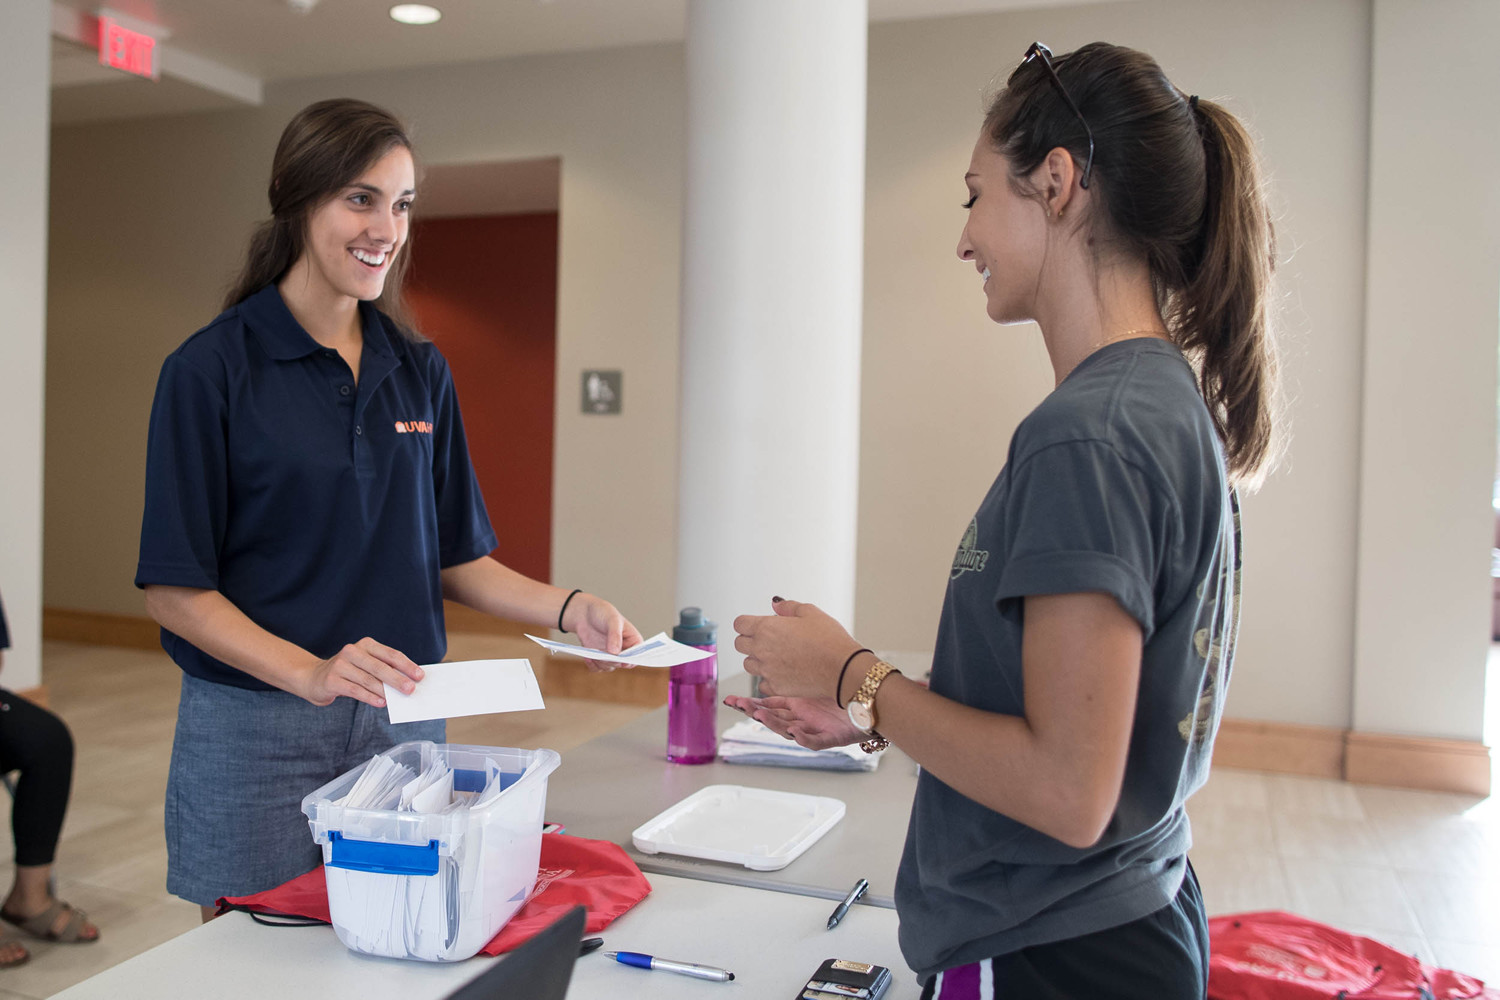 Resident assistant Allison Centineo welcomes a first-year student to Gibbons House.